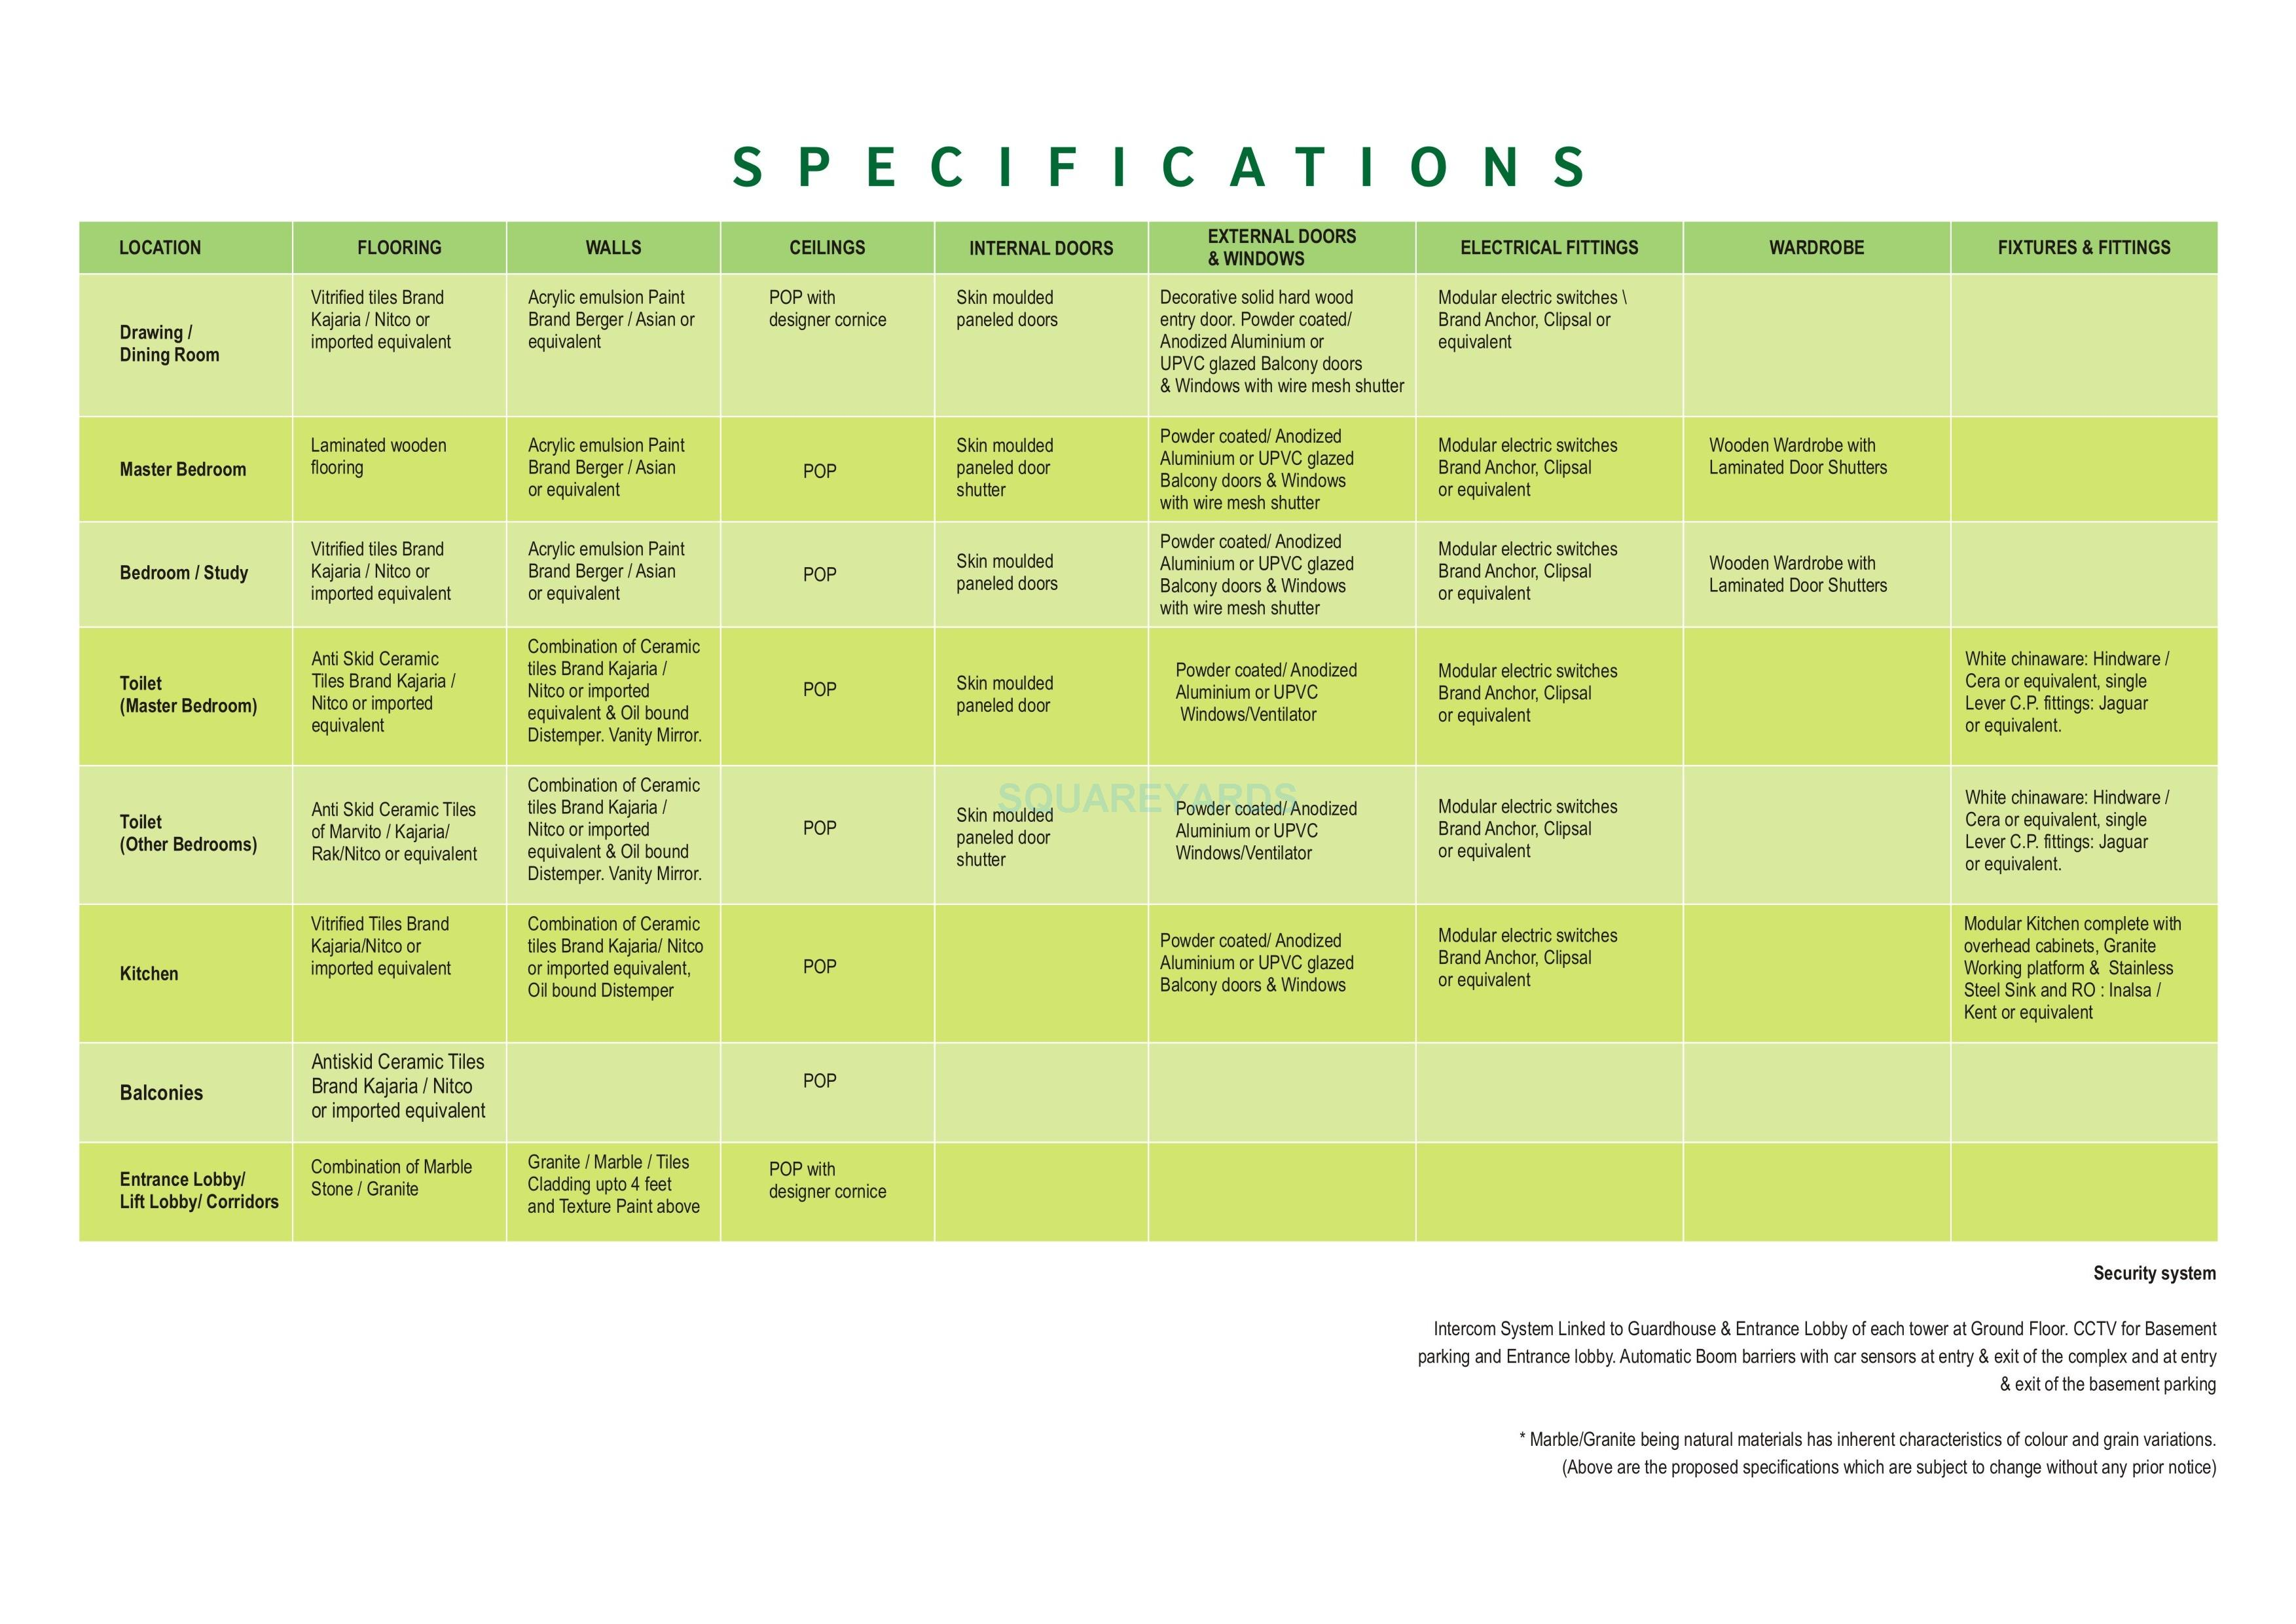 rg residency specification1